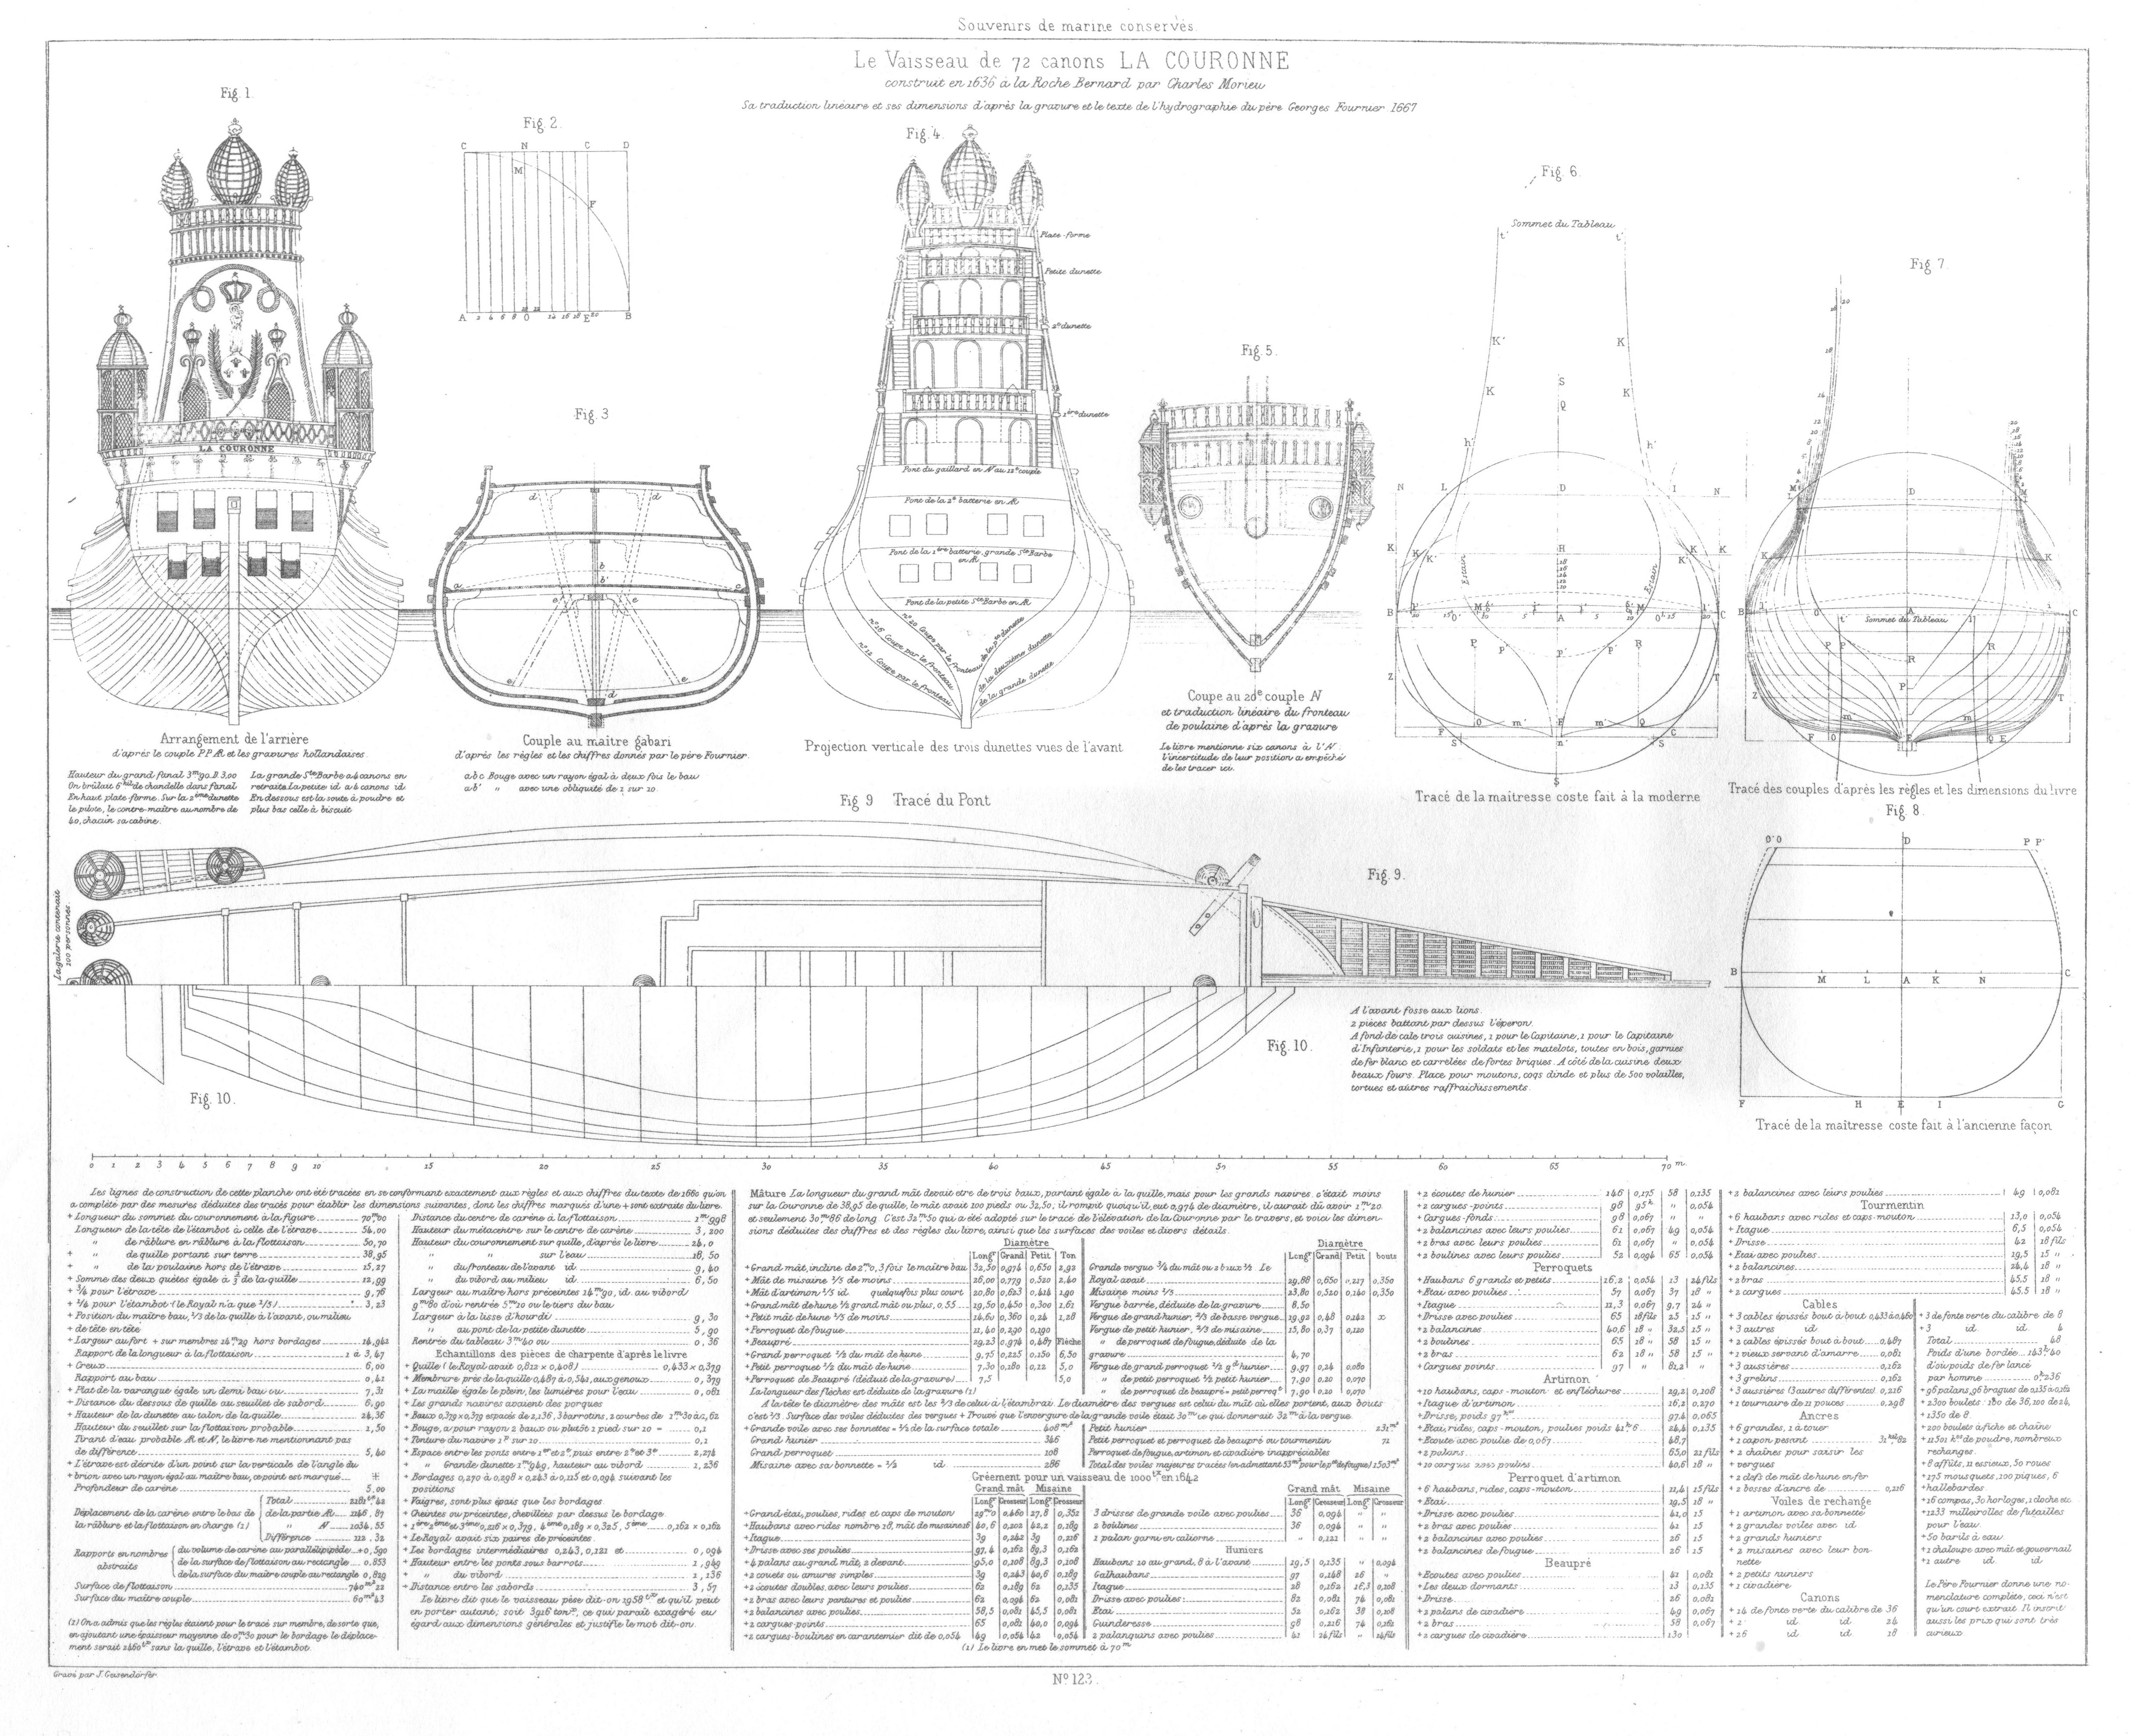 French 17th Century Warship La Couronne further Viking Ship Drawing likewise Catamaran Sailing 45 also Plans For Wooden Model Ships likewise Royalty Free Stock Photos Greek Fishing Boat Vector Drawing Traditional Image38503278. on houseboat plans and drawings